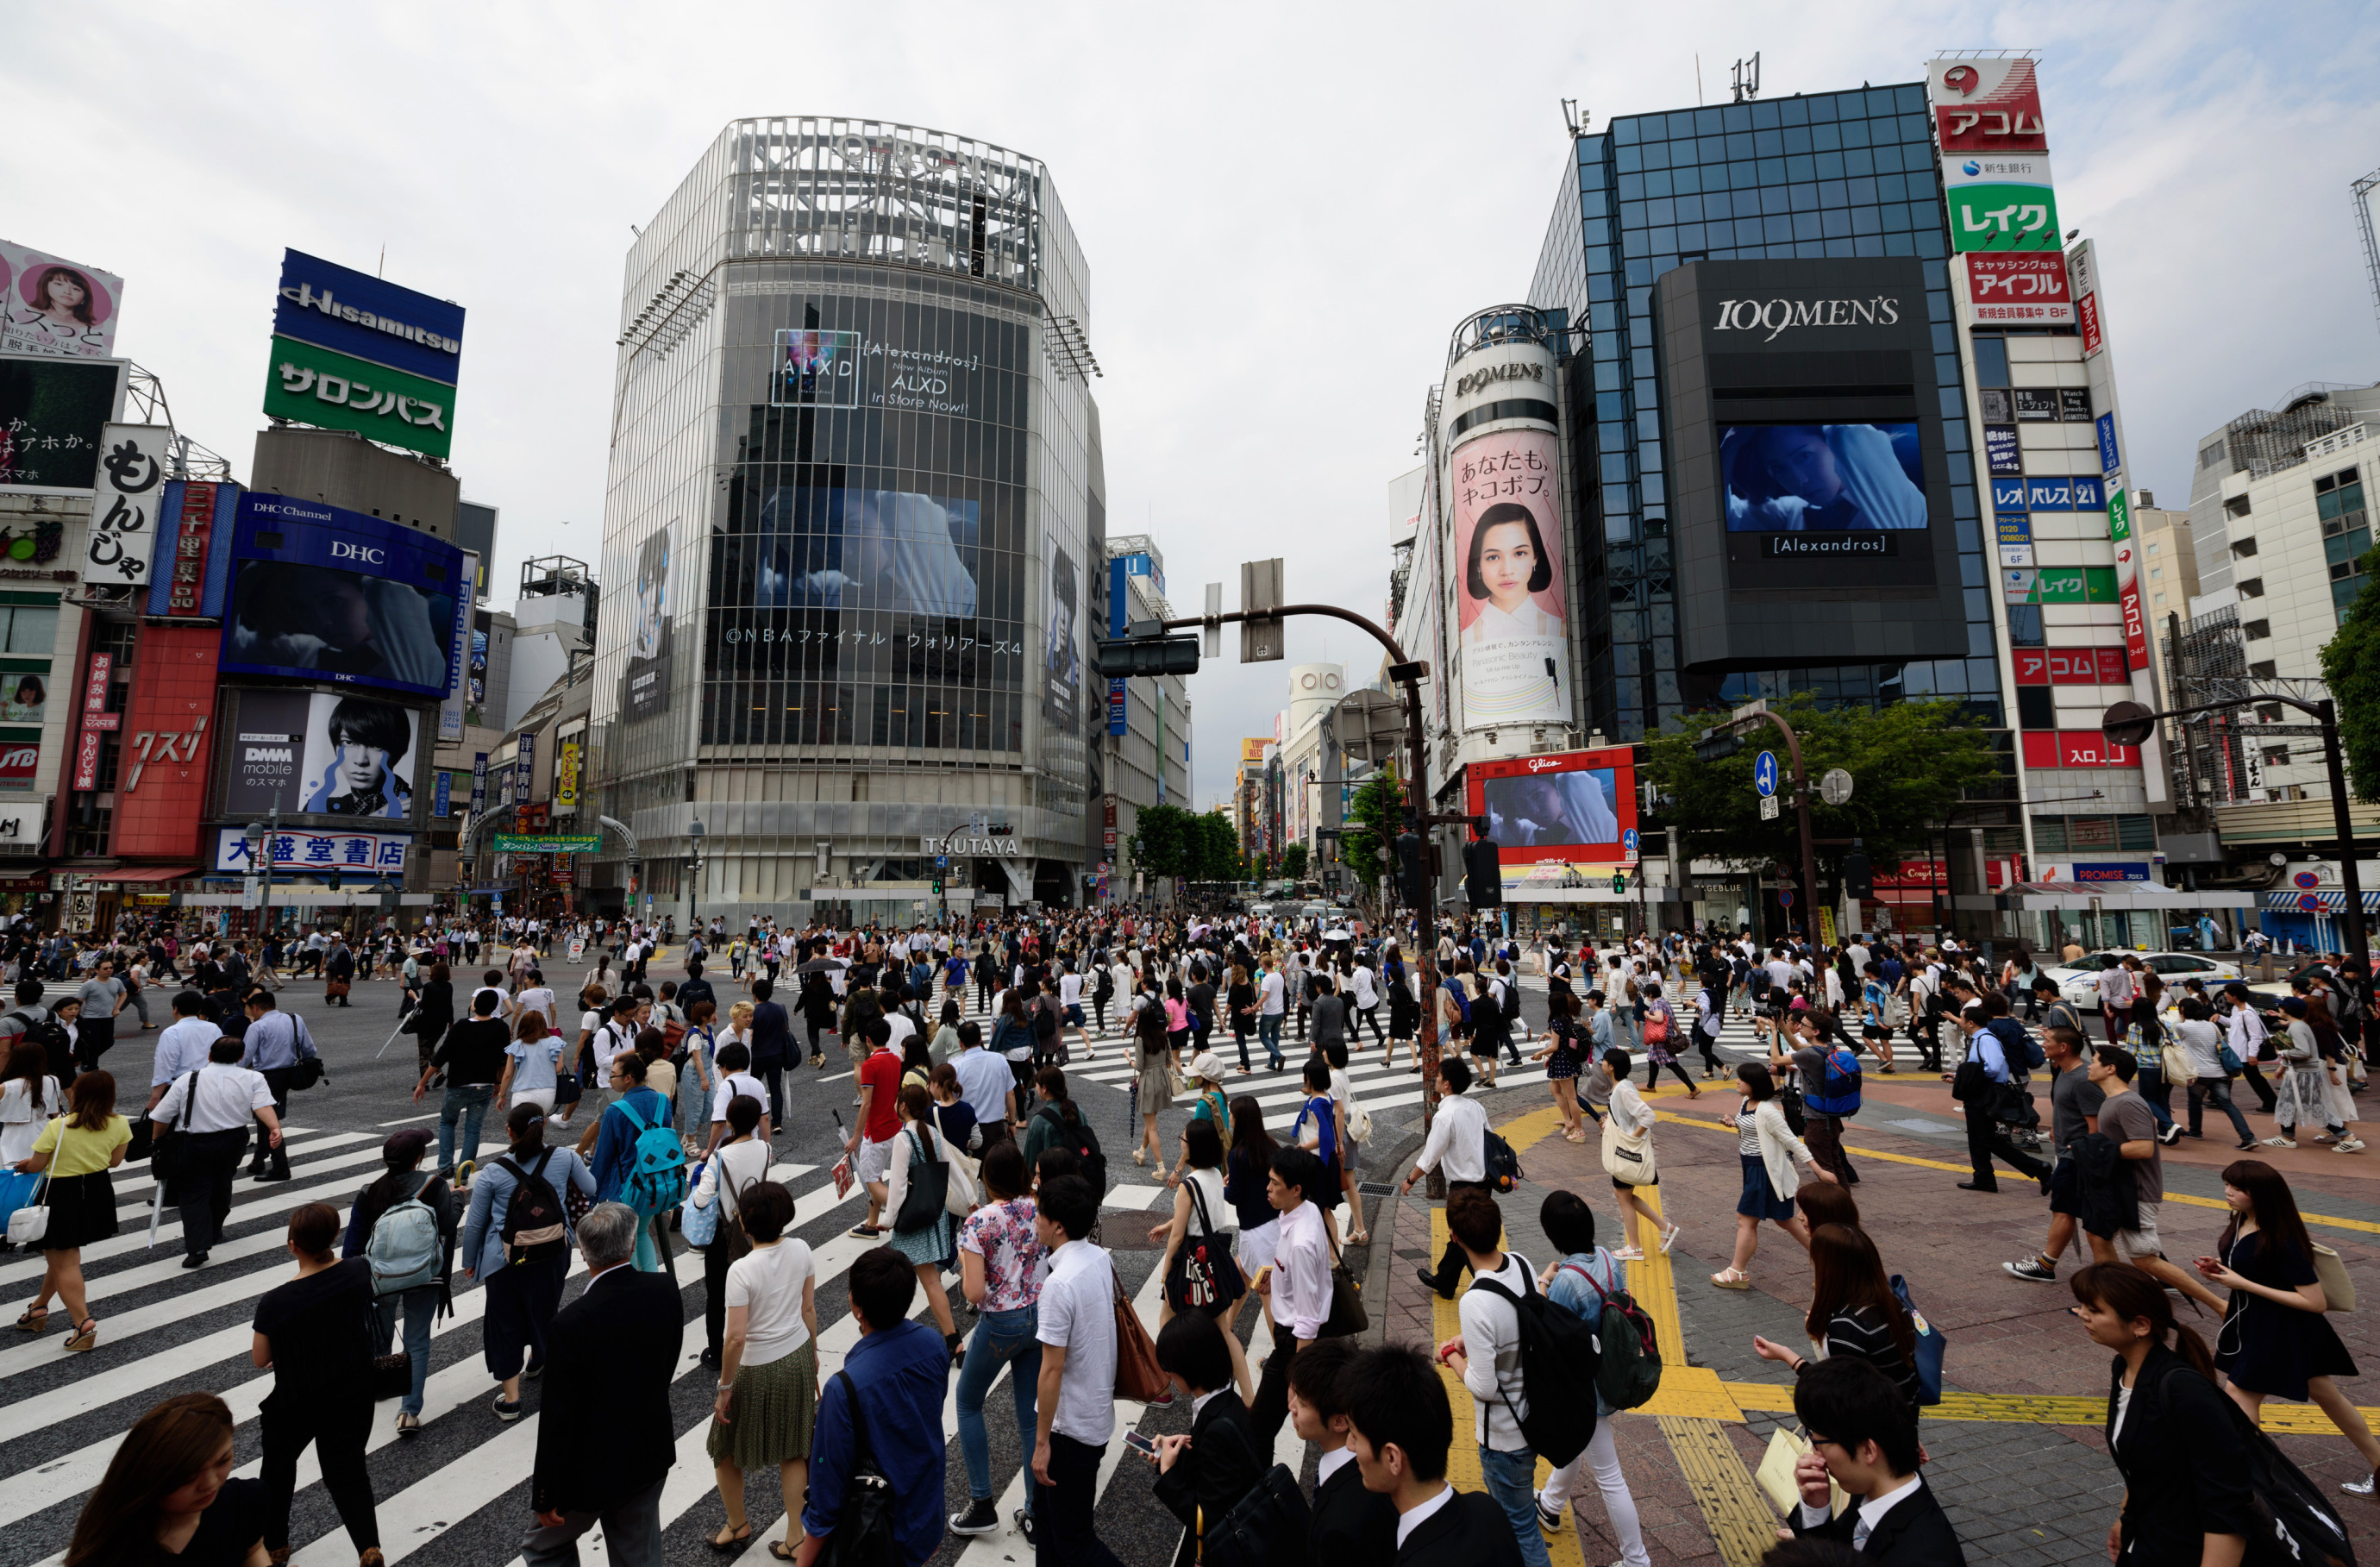 Pedestrians And Shoppers At Shibuya Crossing As Bank Of Japan Holds Monetory Policy Meeting